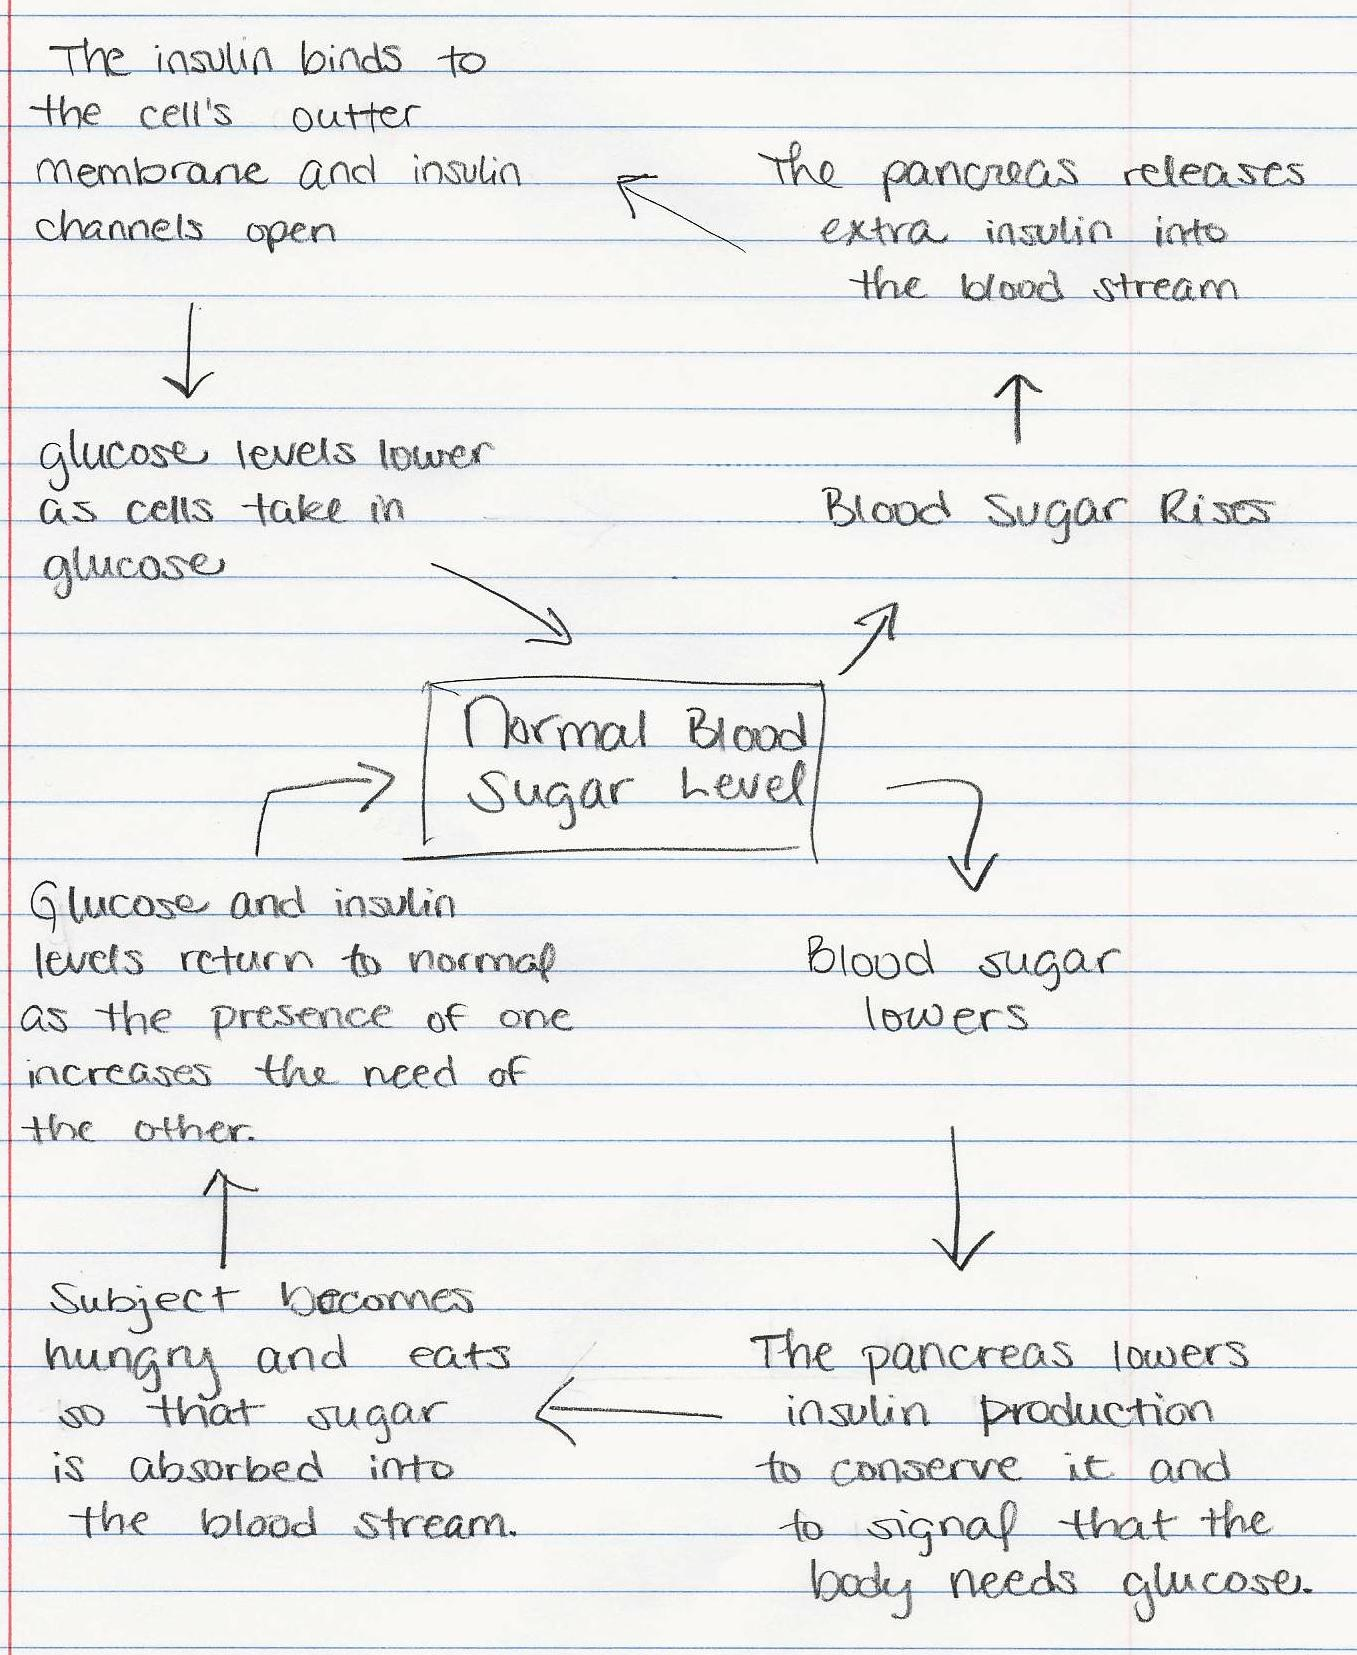 Blood Glucose Levels Concept Map Answers